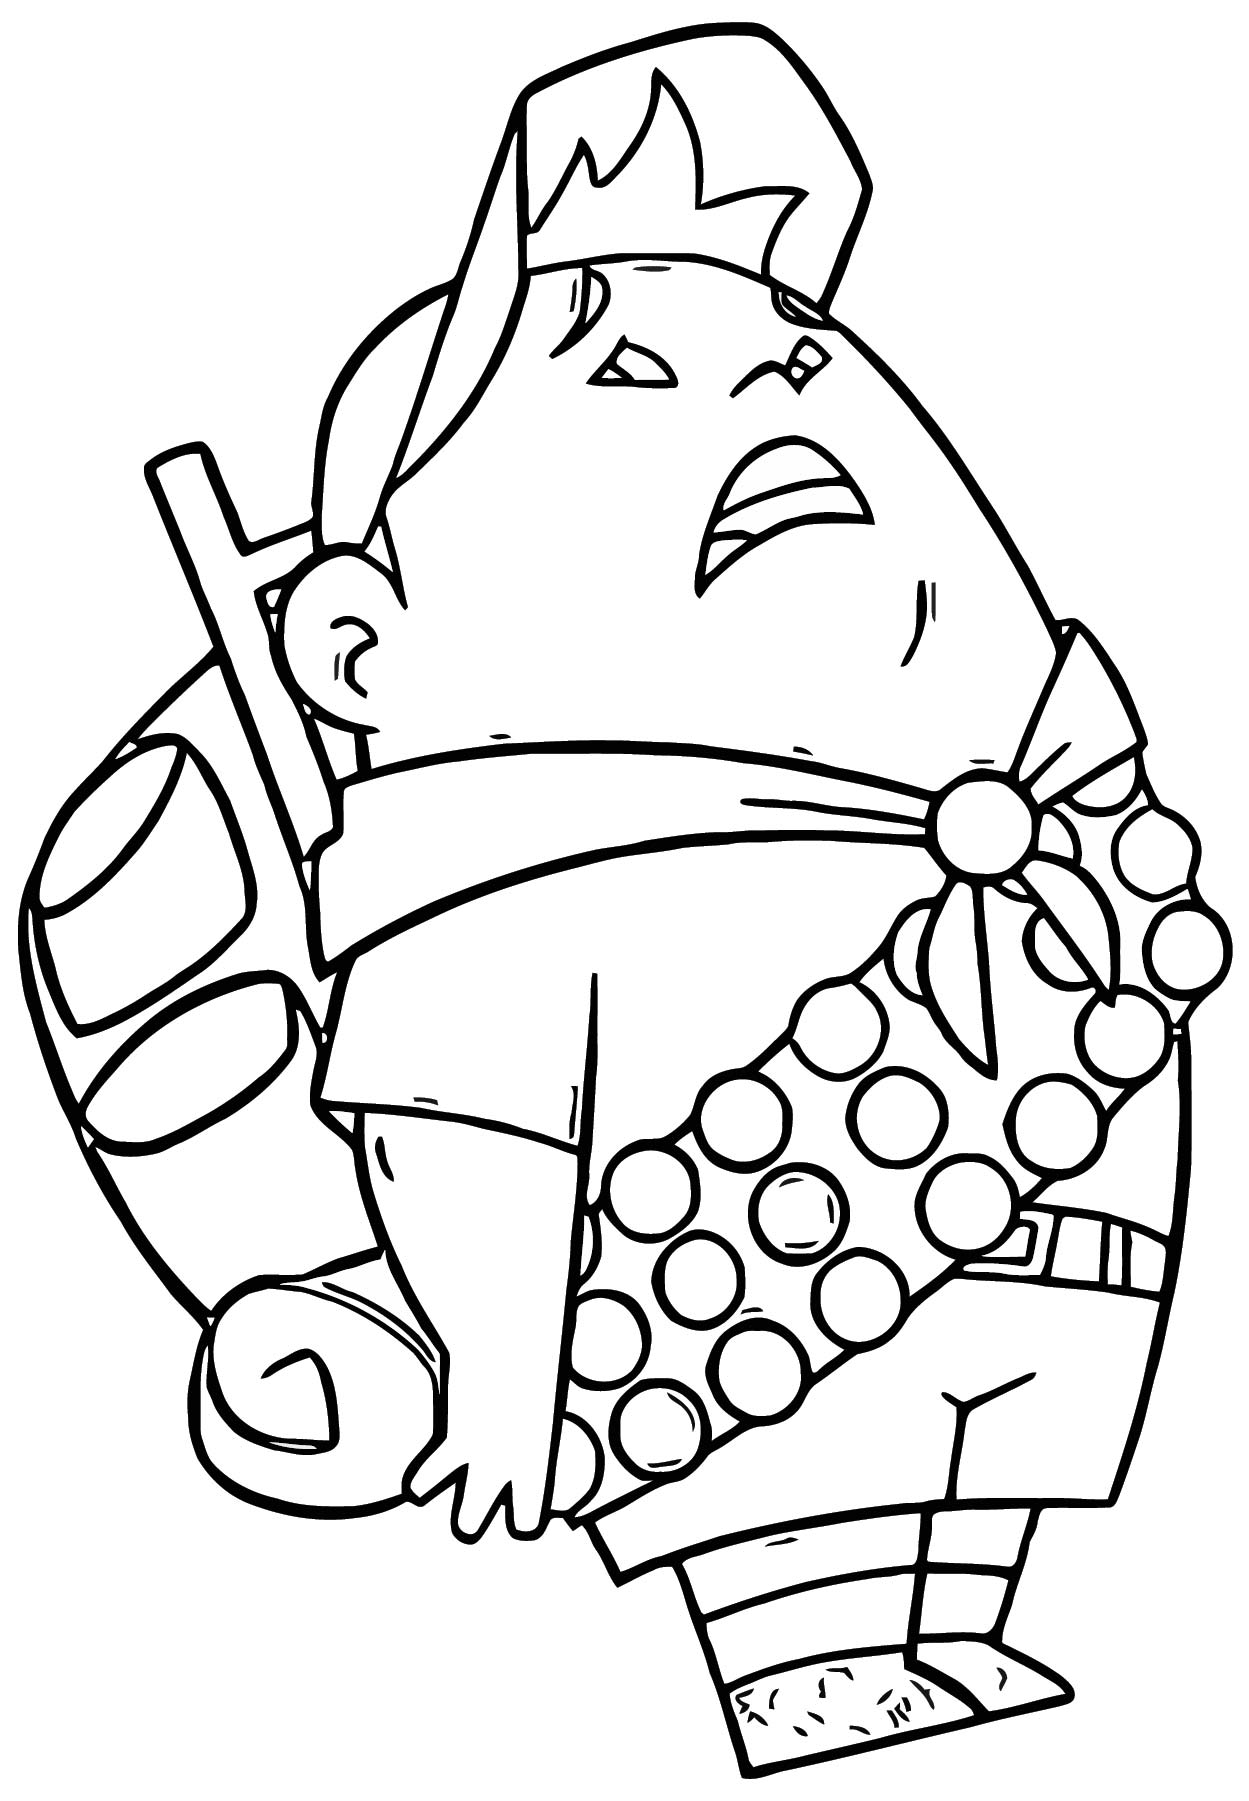 Russell from up coloring pages ~ Disney Pixar Up Coloring Pages 05 | Wecoloringpage.com